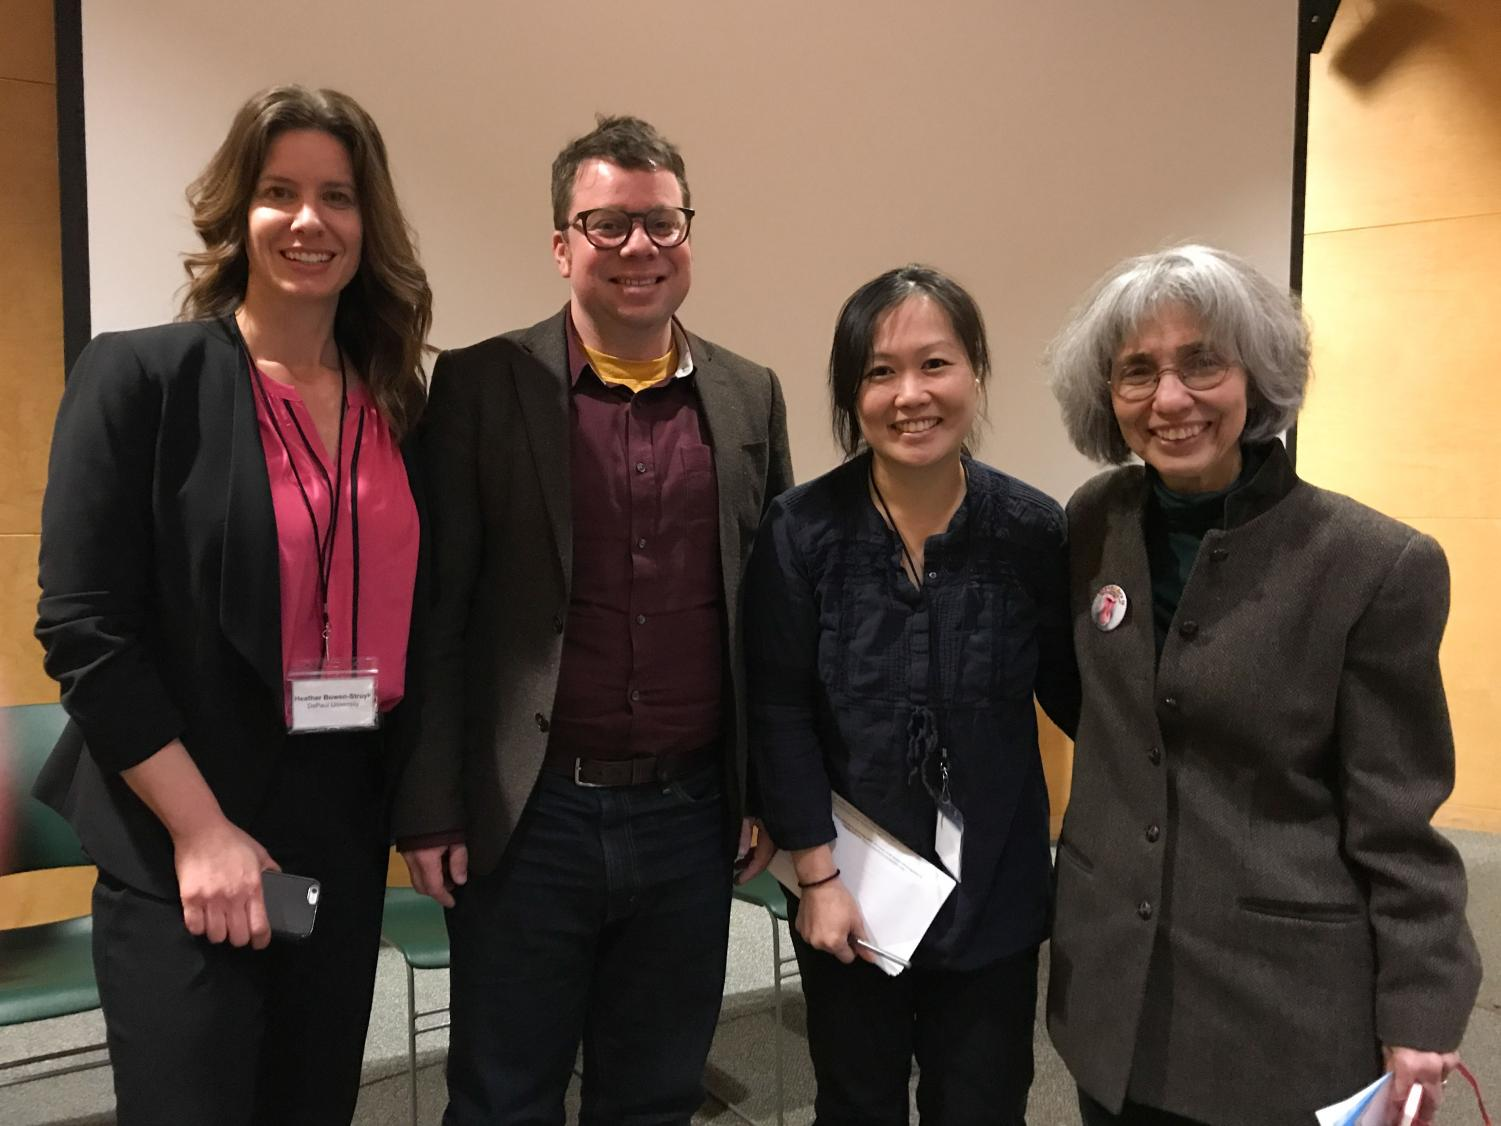 """Scholars of Japanese literature convened in Oberlin last weekend for a conference on """"Violence, Justice, & Honor in Japan's Literary Cultures."""""""